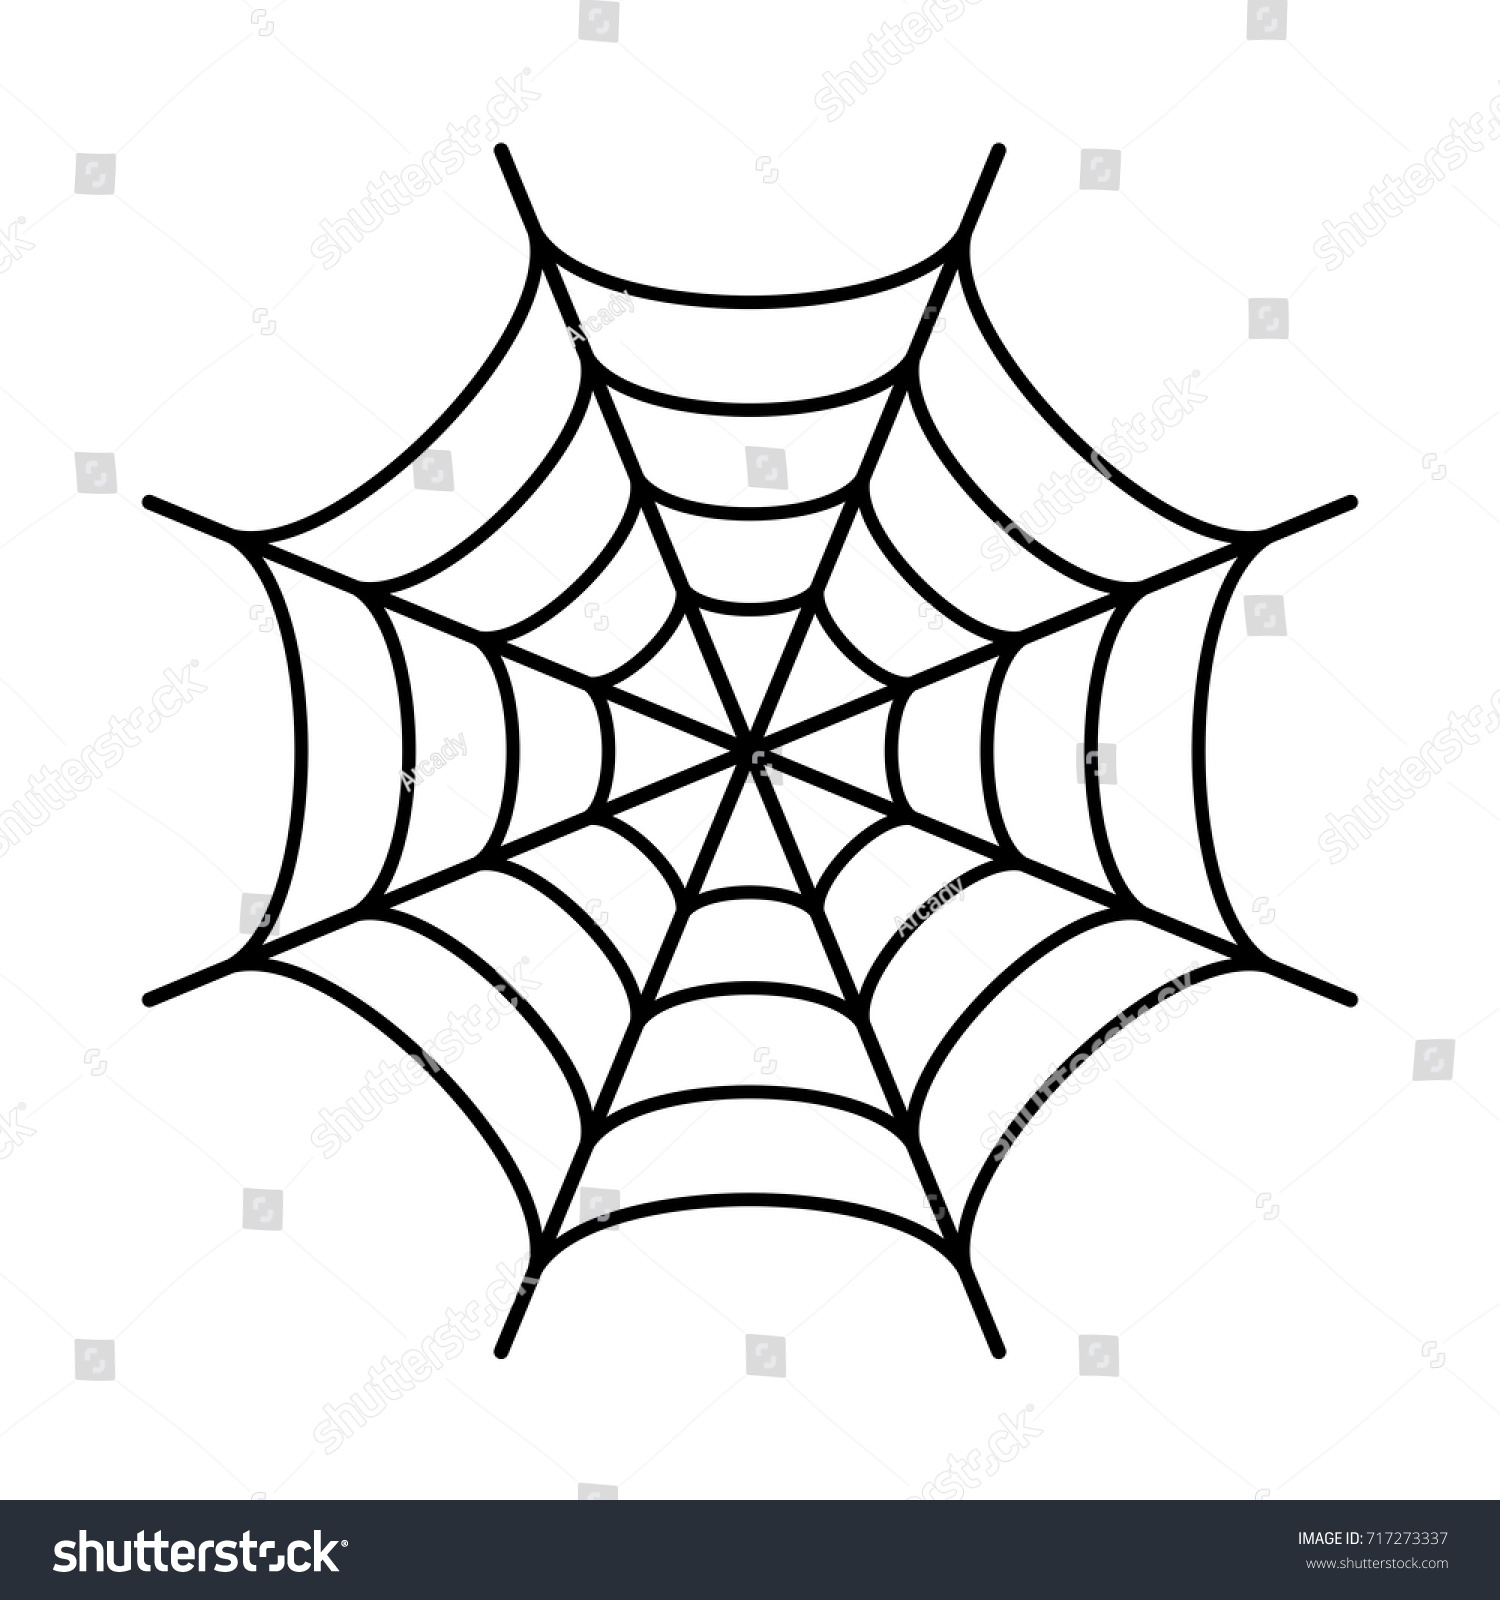 spider web black silhouette icon on stock vector hd royalty free rh shutterstock com spider web vector free spider web vector download